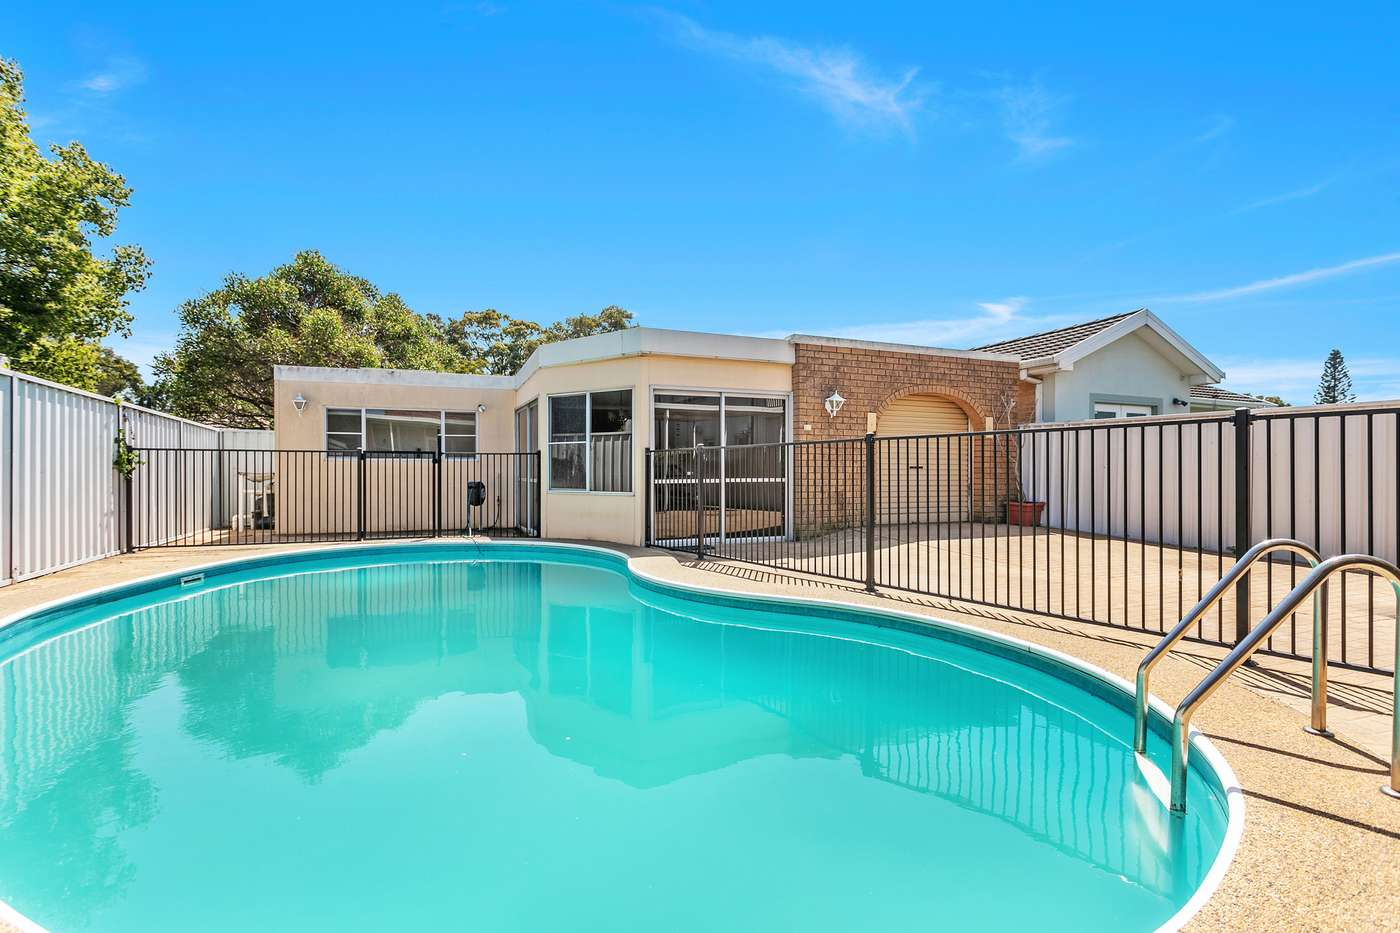 Main view of Homely house listing, 81 Culver Street, Monterey, NSW 2217